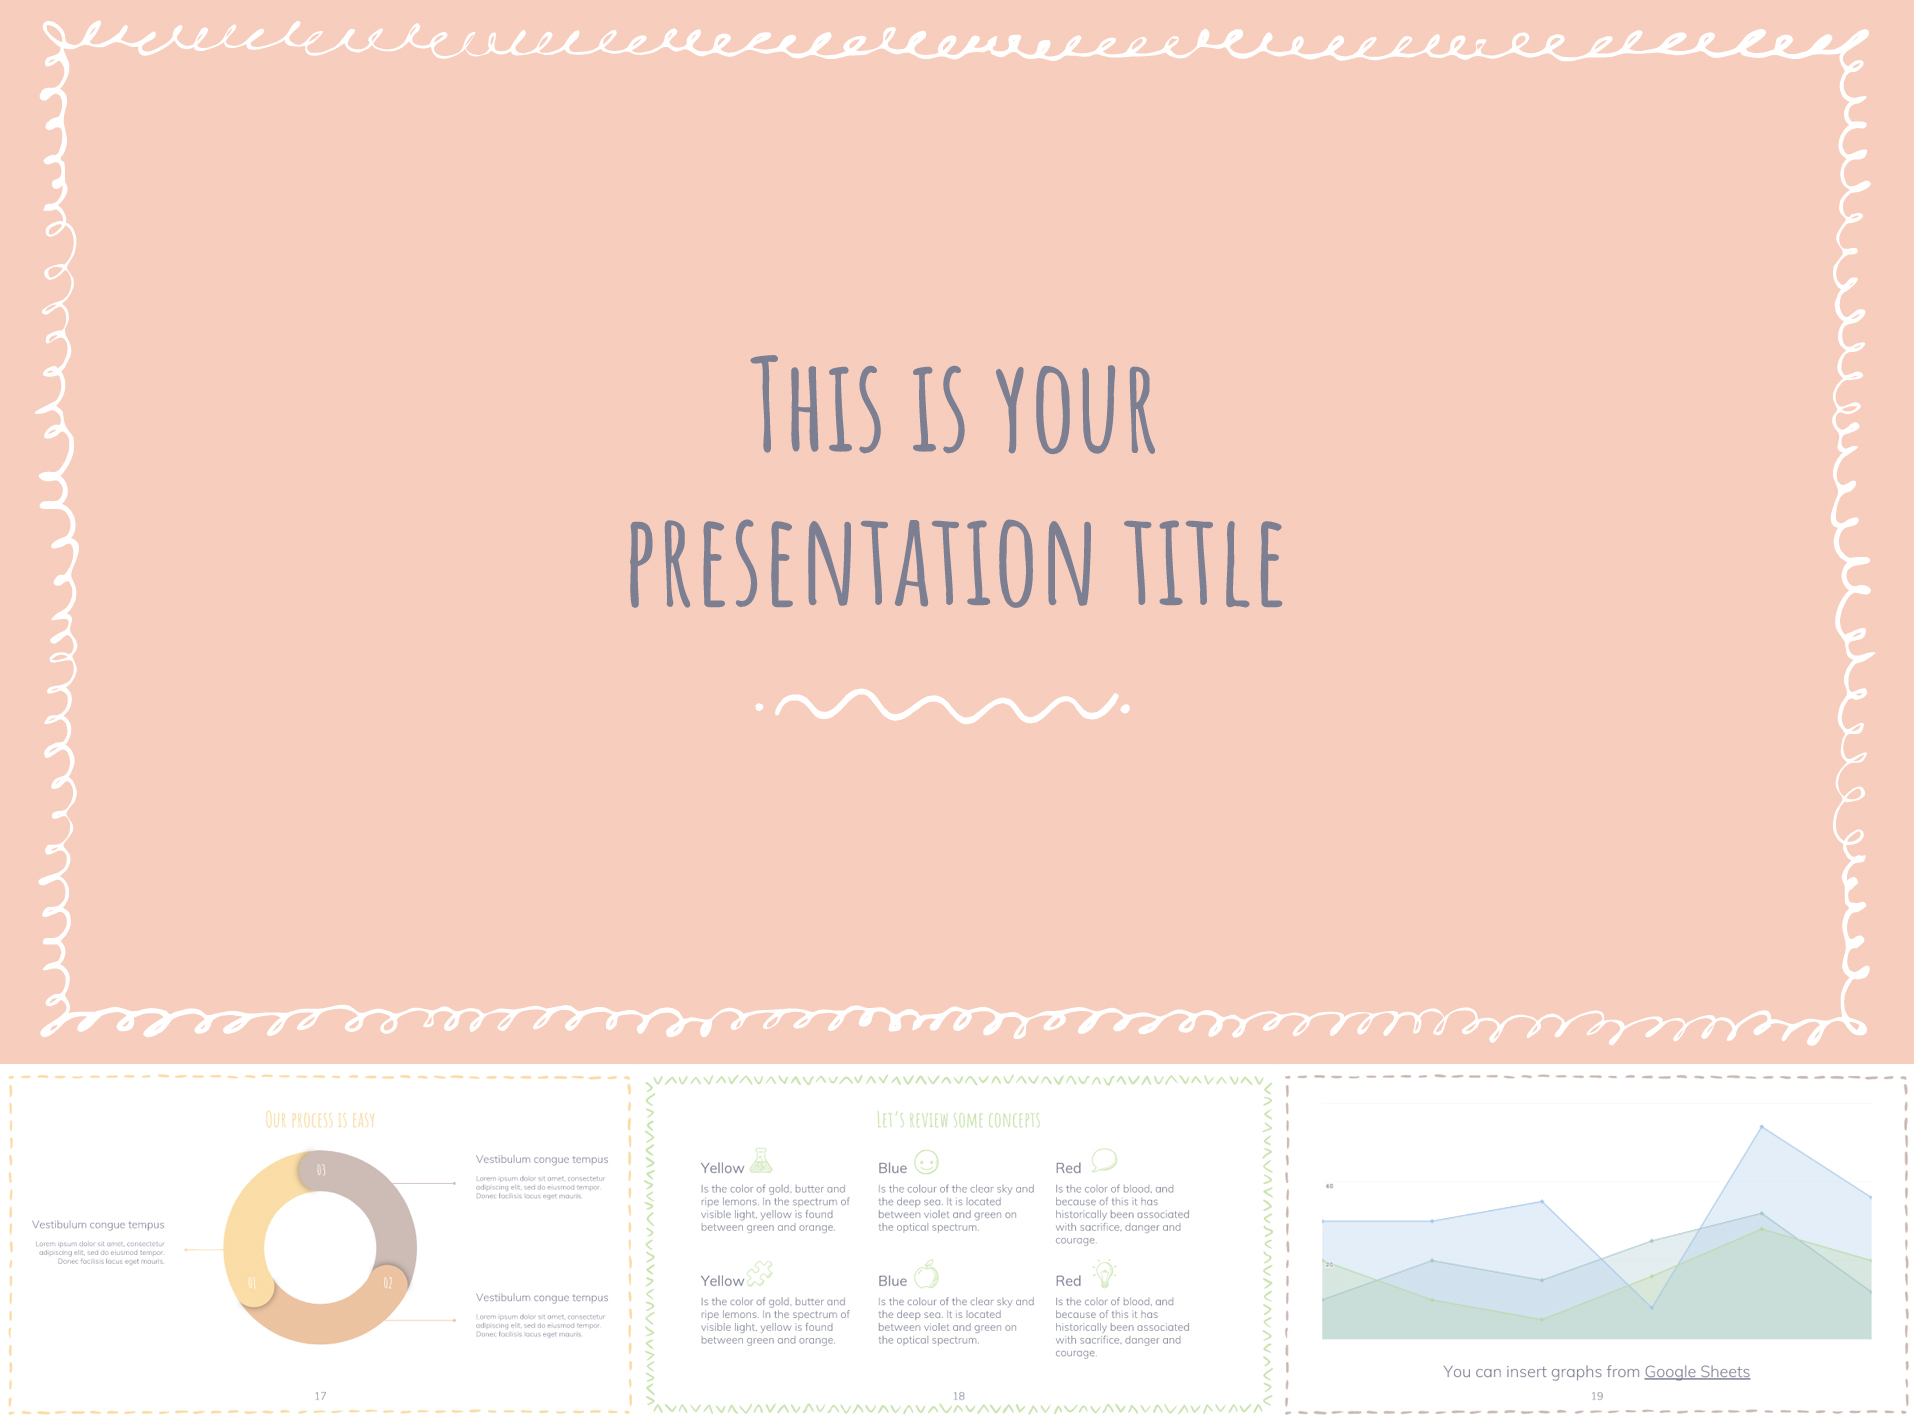 Google Slides Template in Pastel Color Scheme